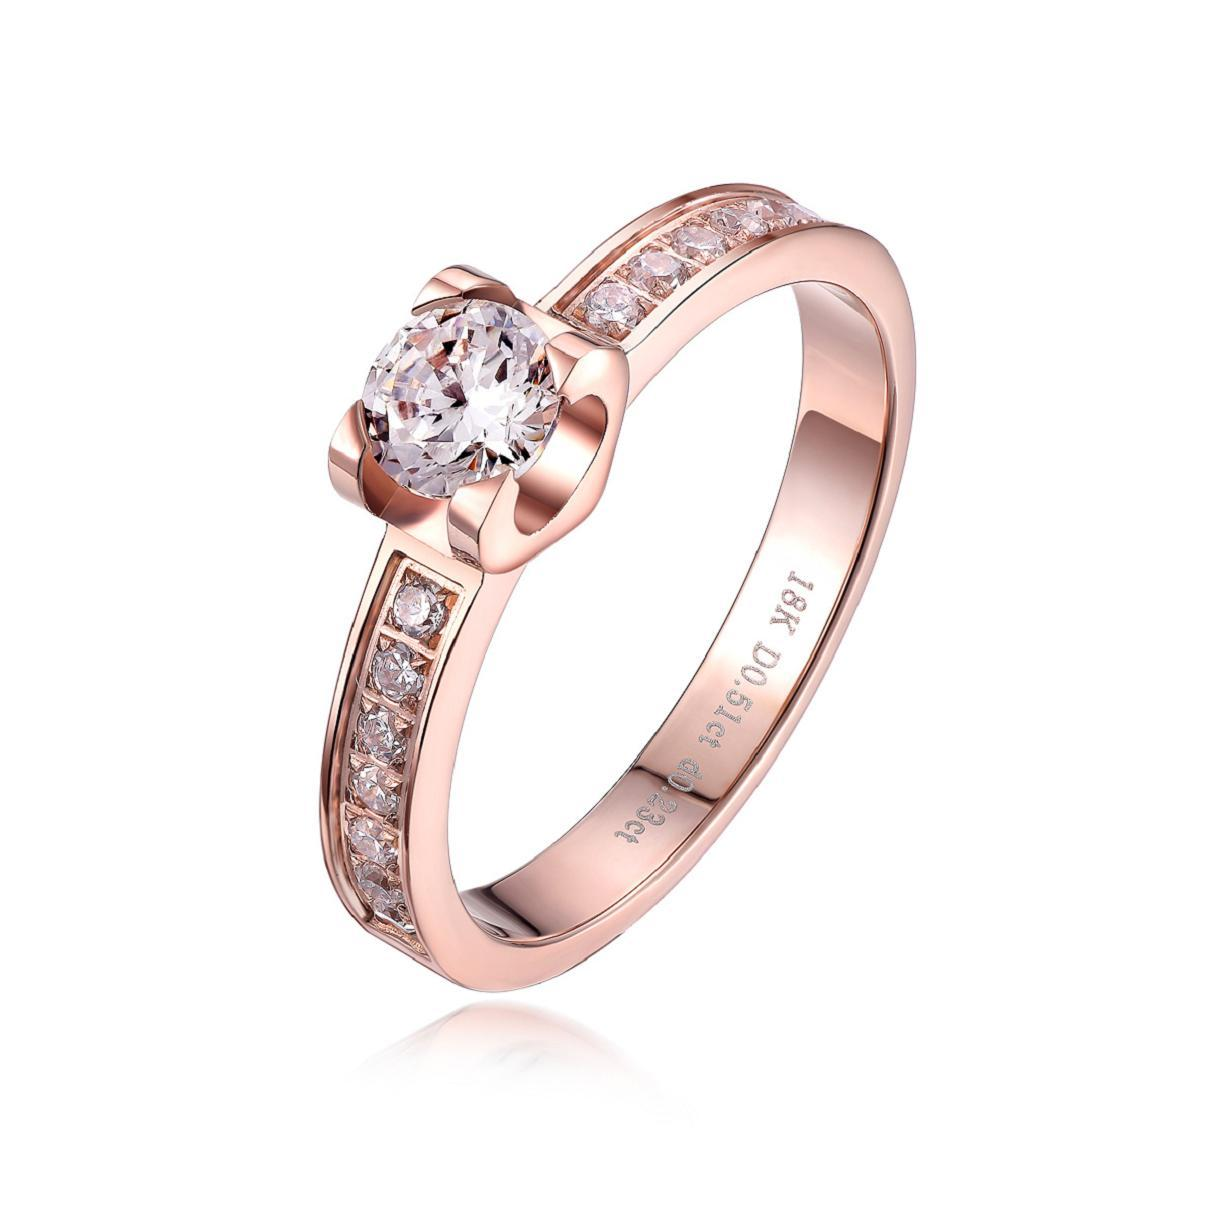 female titanium plated 18k rose gold CZ crystal ring fashion lovers wedding gift christmas passion,antiallergic IF-R024(China (Mainland))